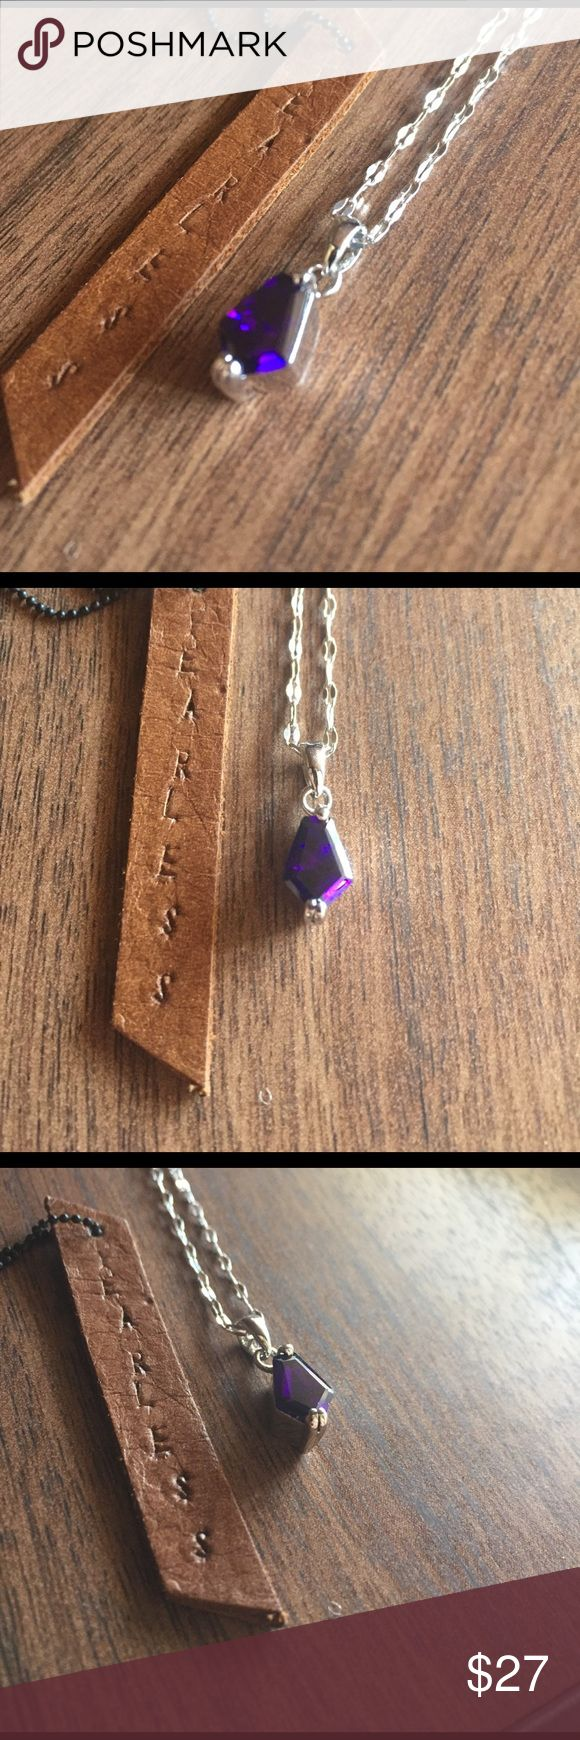 Sterling silver purple pendant chain 😍Solid Sterling silver, shop with confidence 🎊🎉 our jewelry is stamped 925 for the quality assurance 😍 #Sterlingsilver #Jewelry #Imperfectdivine 16 inch chain Jewelry Necklaces